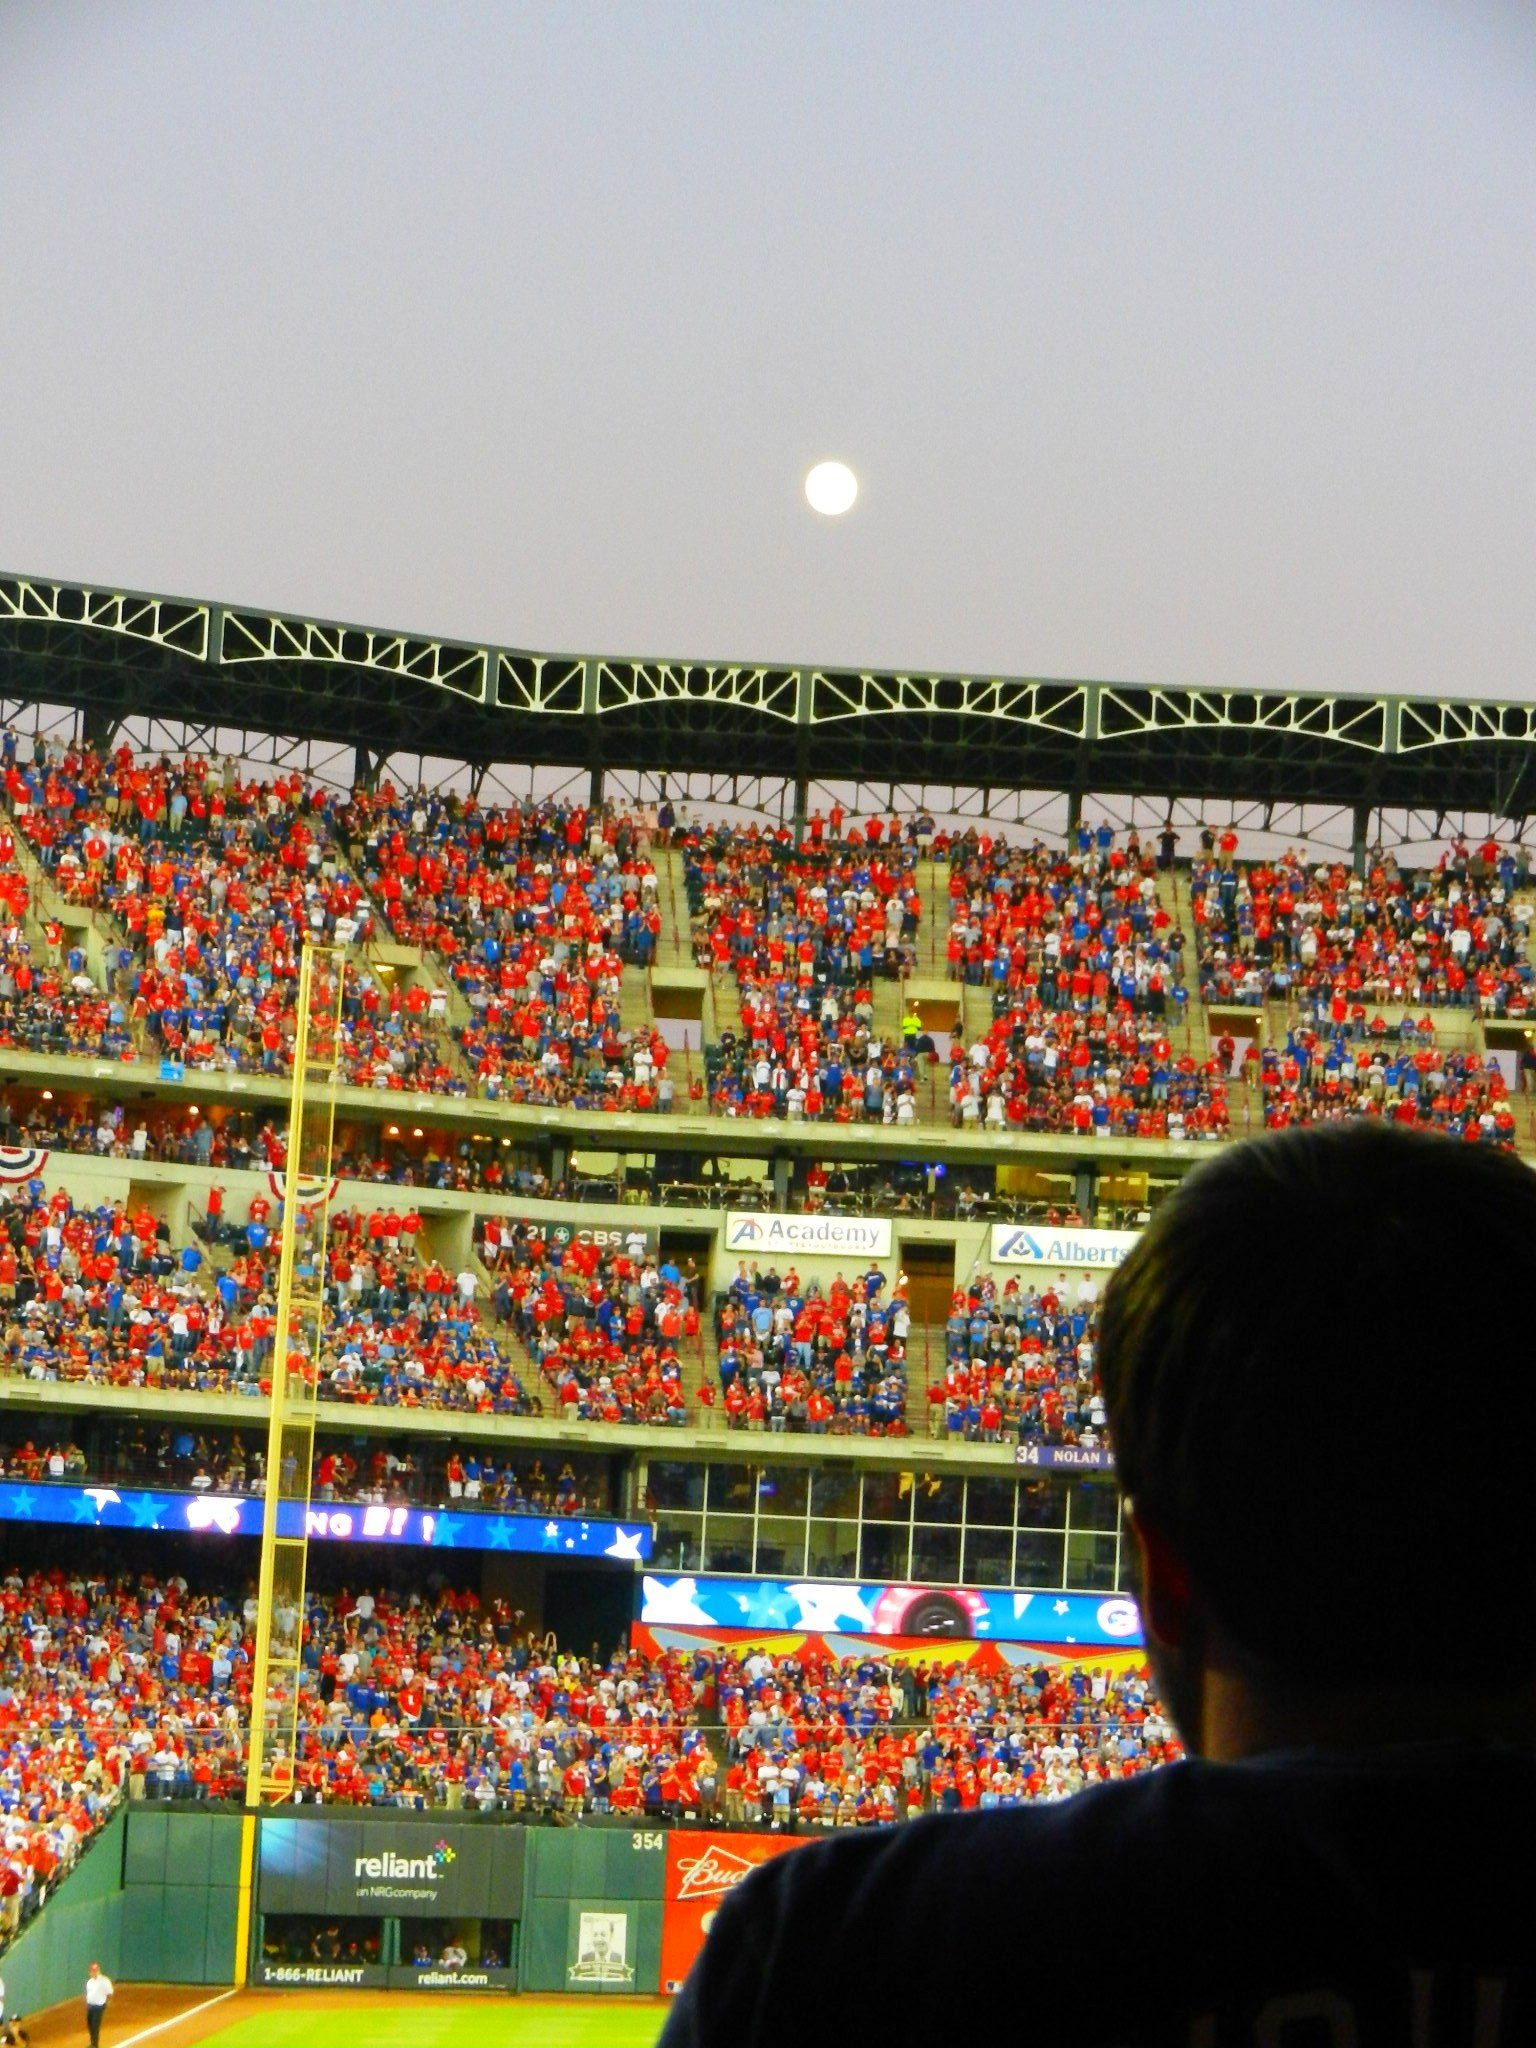 Moon rising over Ballpark in Arlington just before playoff game 2011